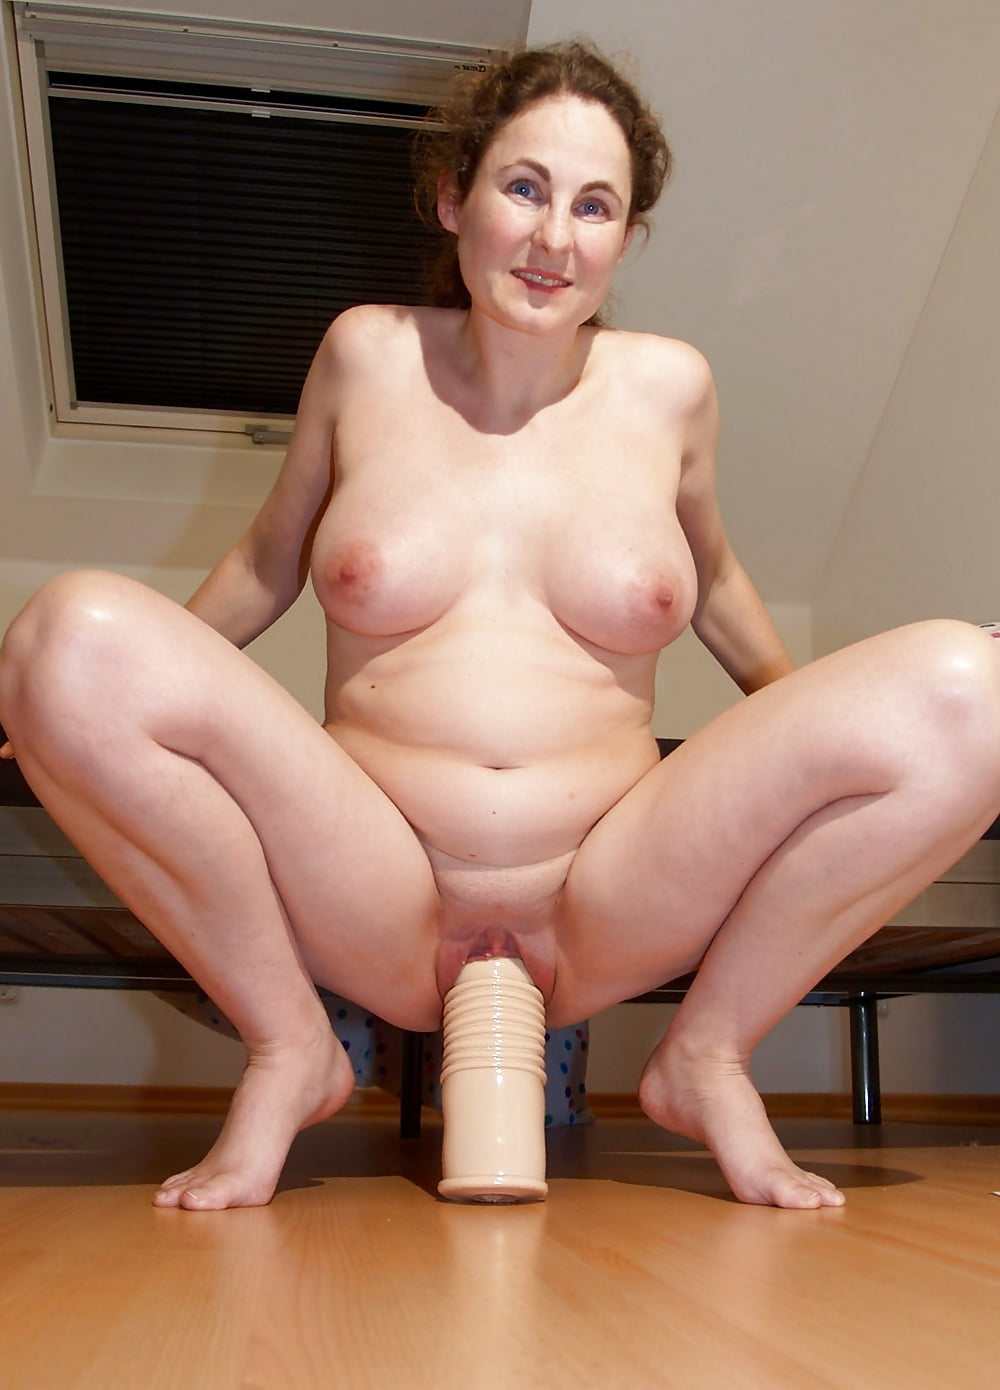 mature-hard-dildo-fat-nude-old-women-bangali